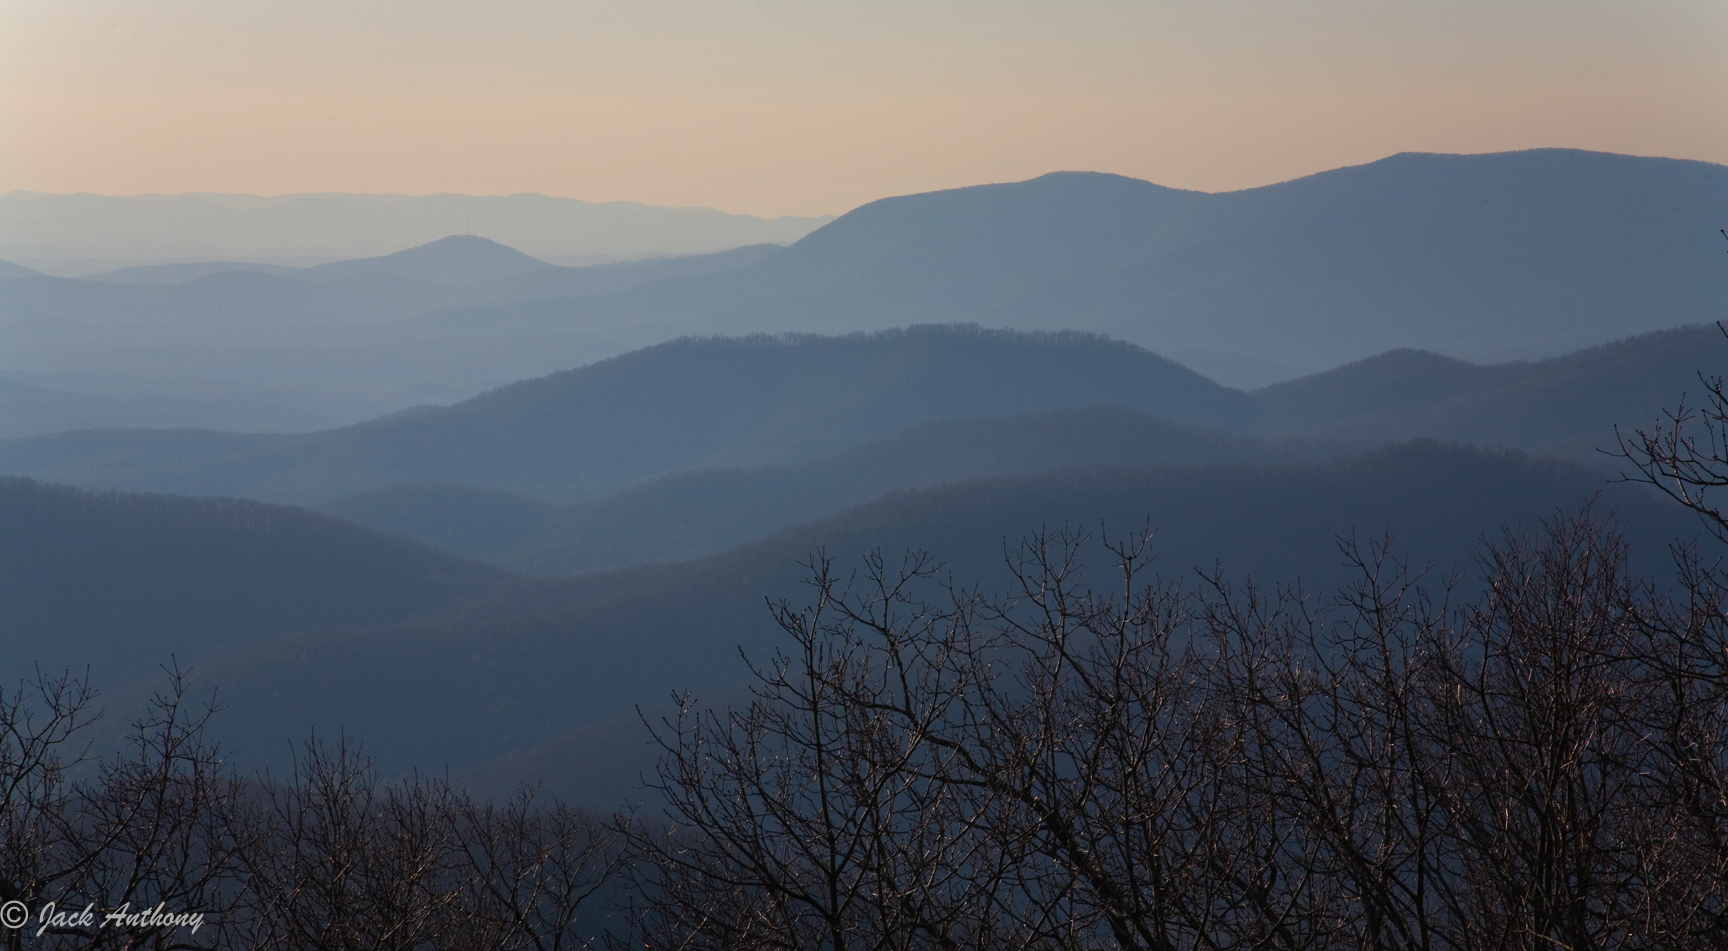 Rich Mountain Wildernes from Springer Mountain, GA.